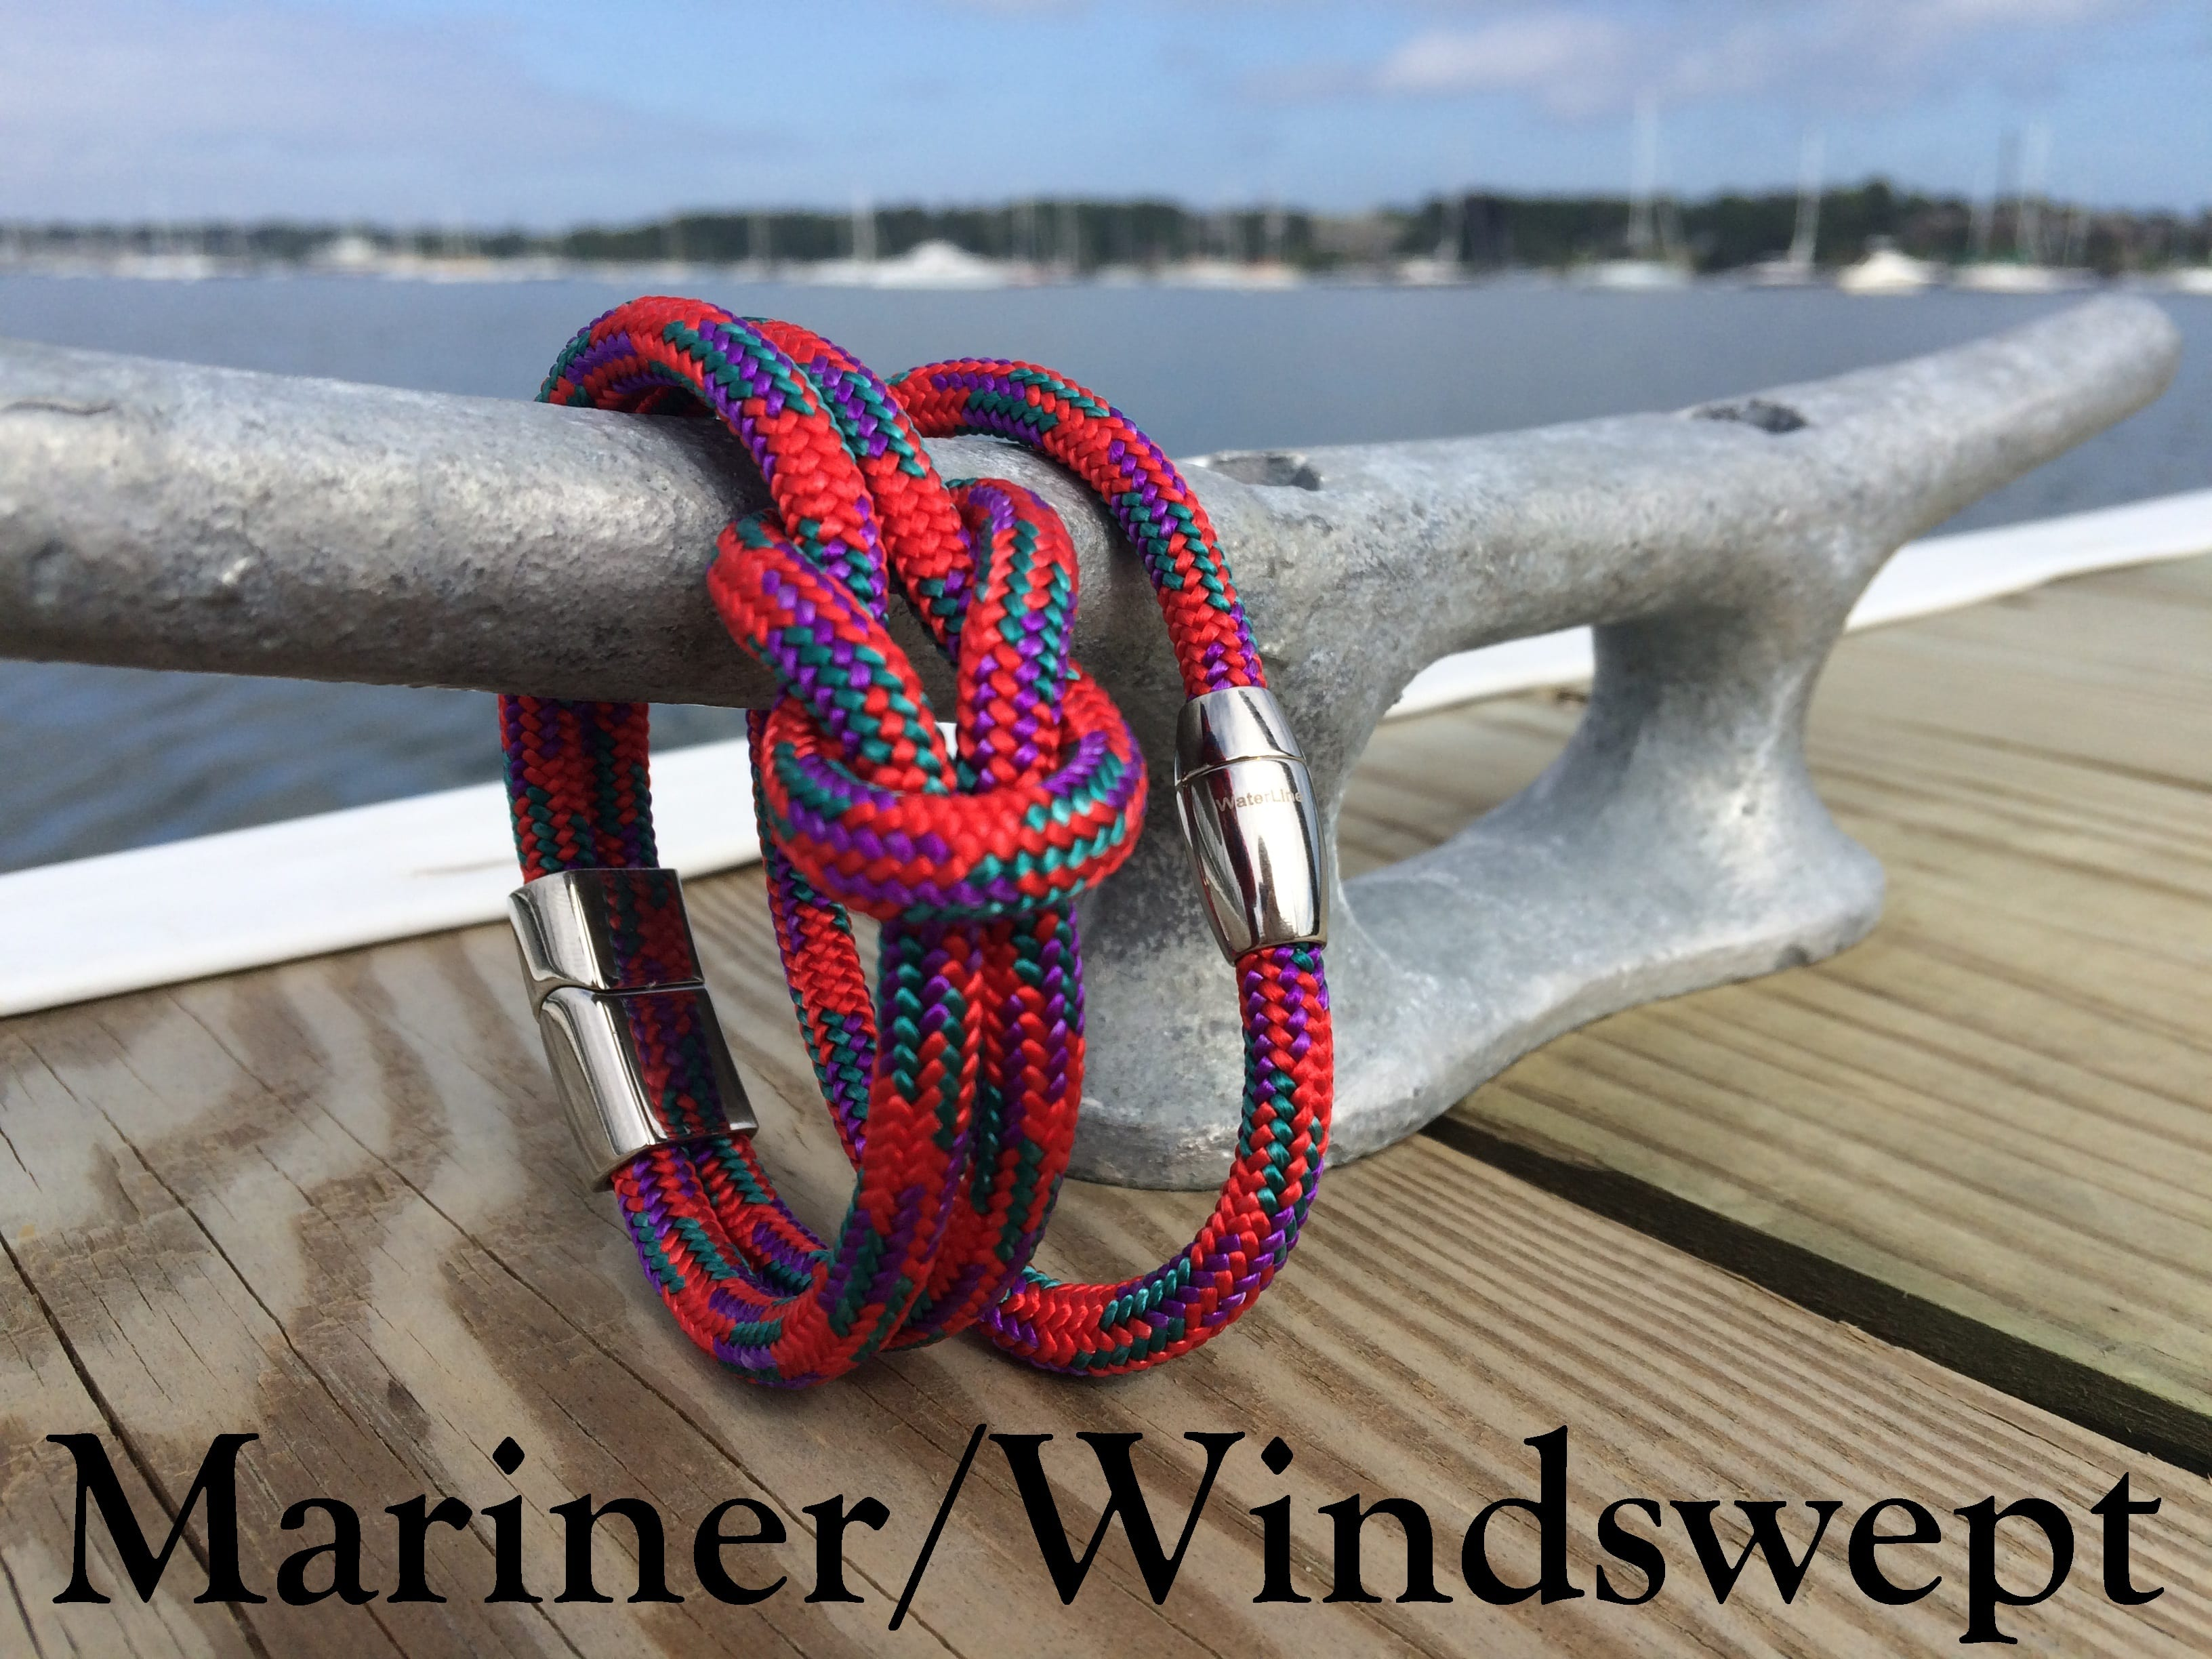 WaterLine Mariner/Windswept Bracelet